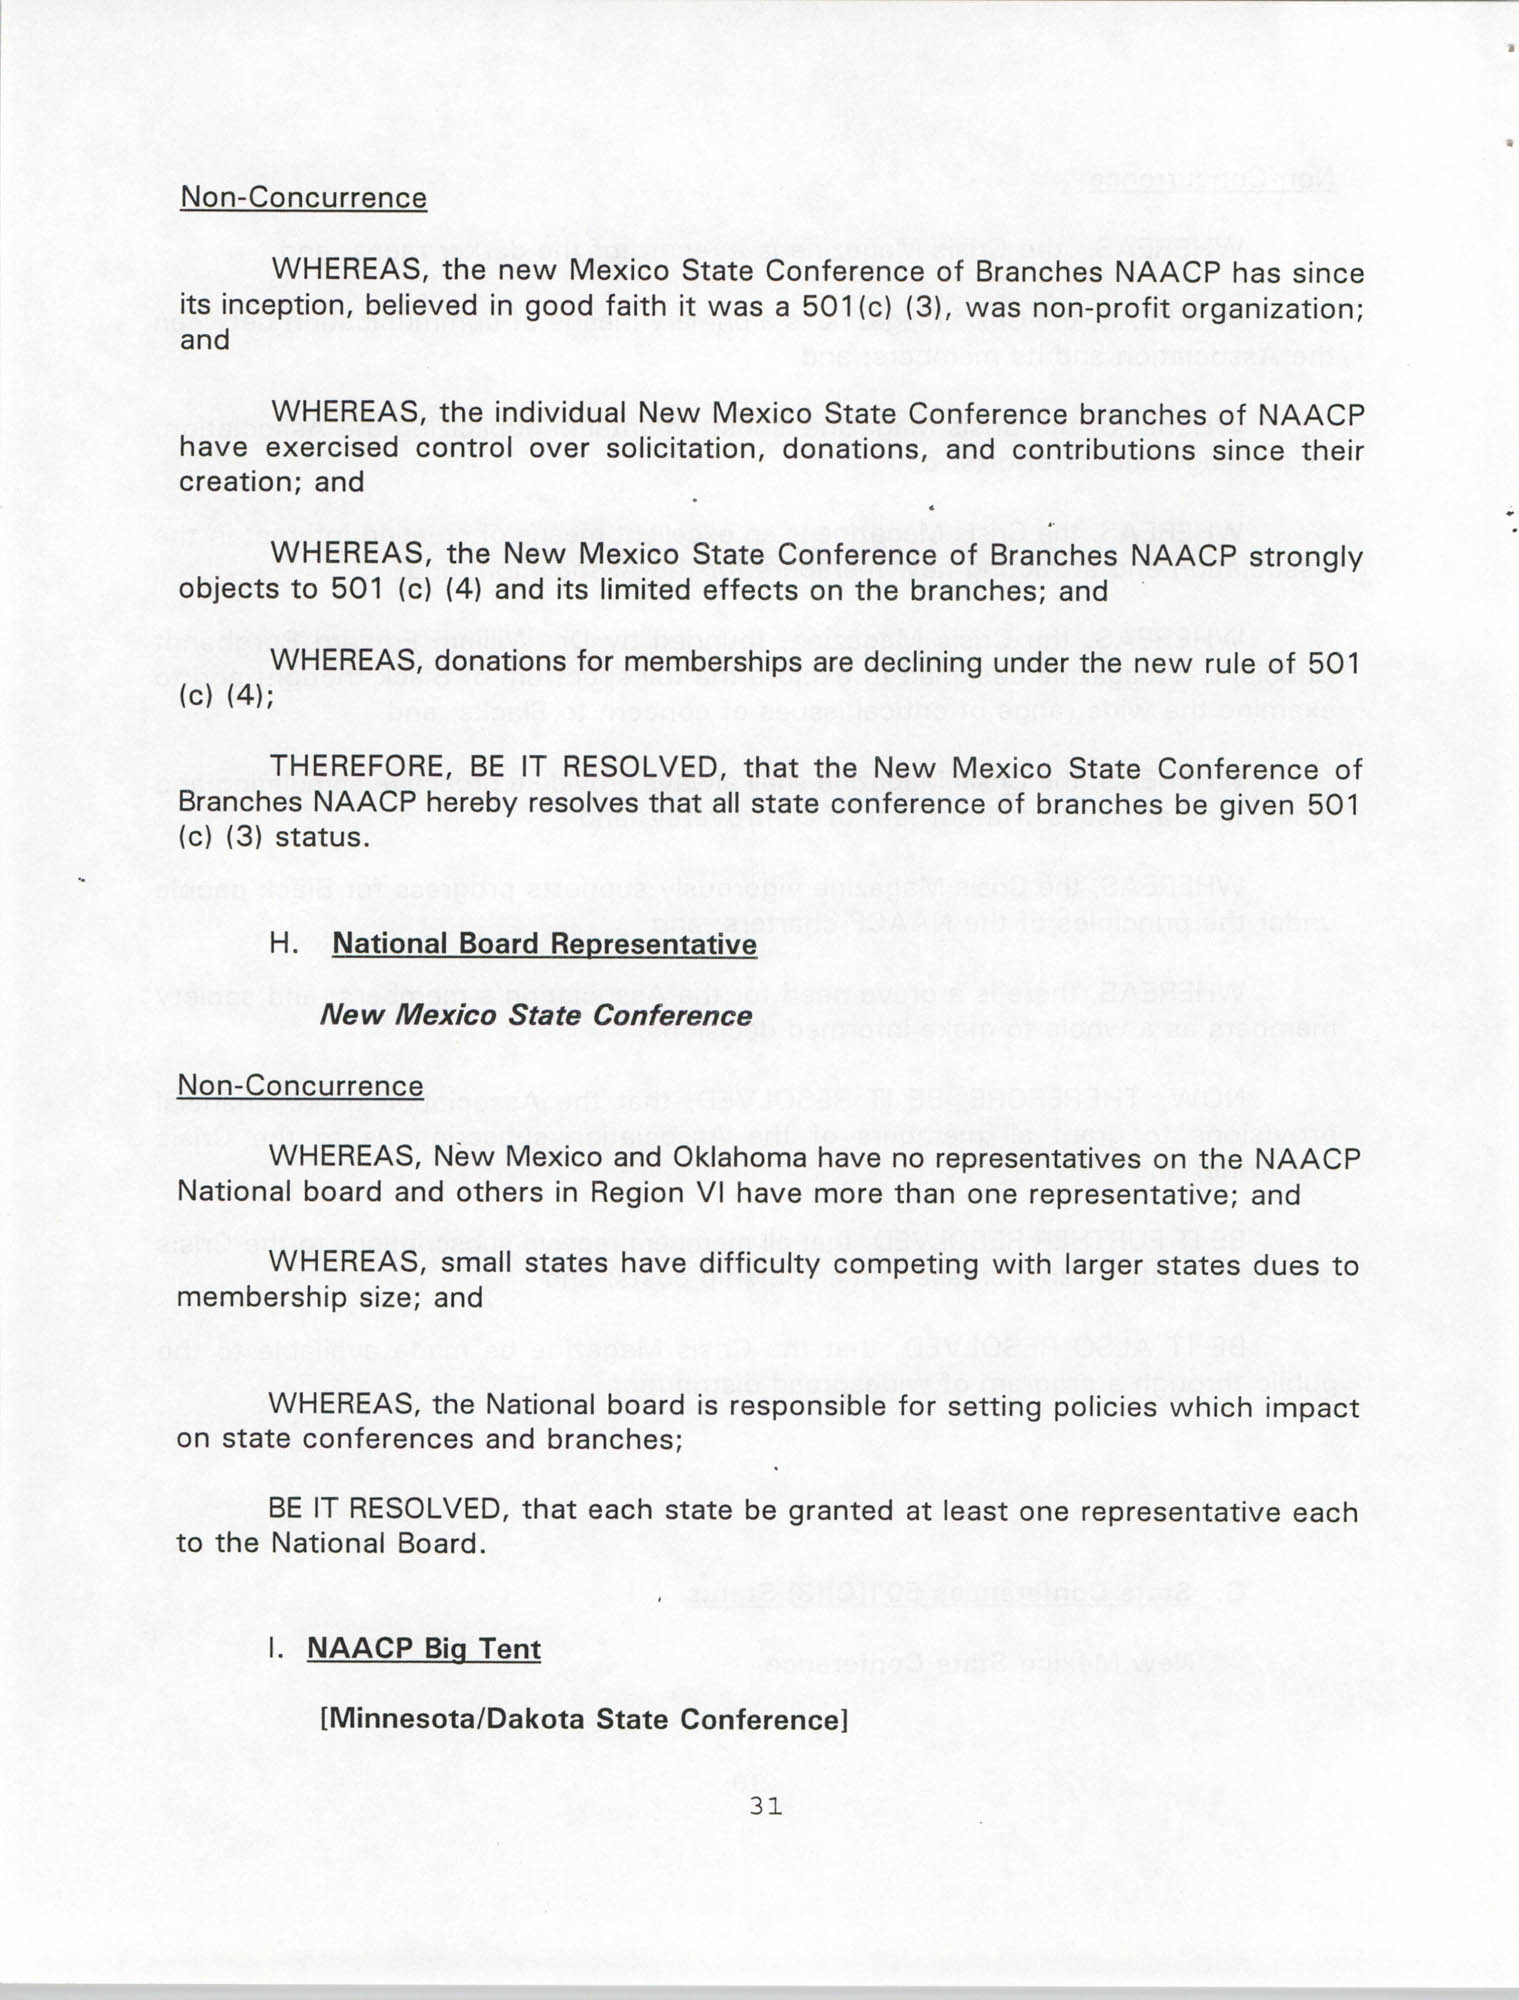 Resolutions Submitted Under Article X, Section 2 of the Constitution of the NAACP, 1994, Page 31